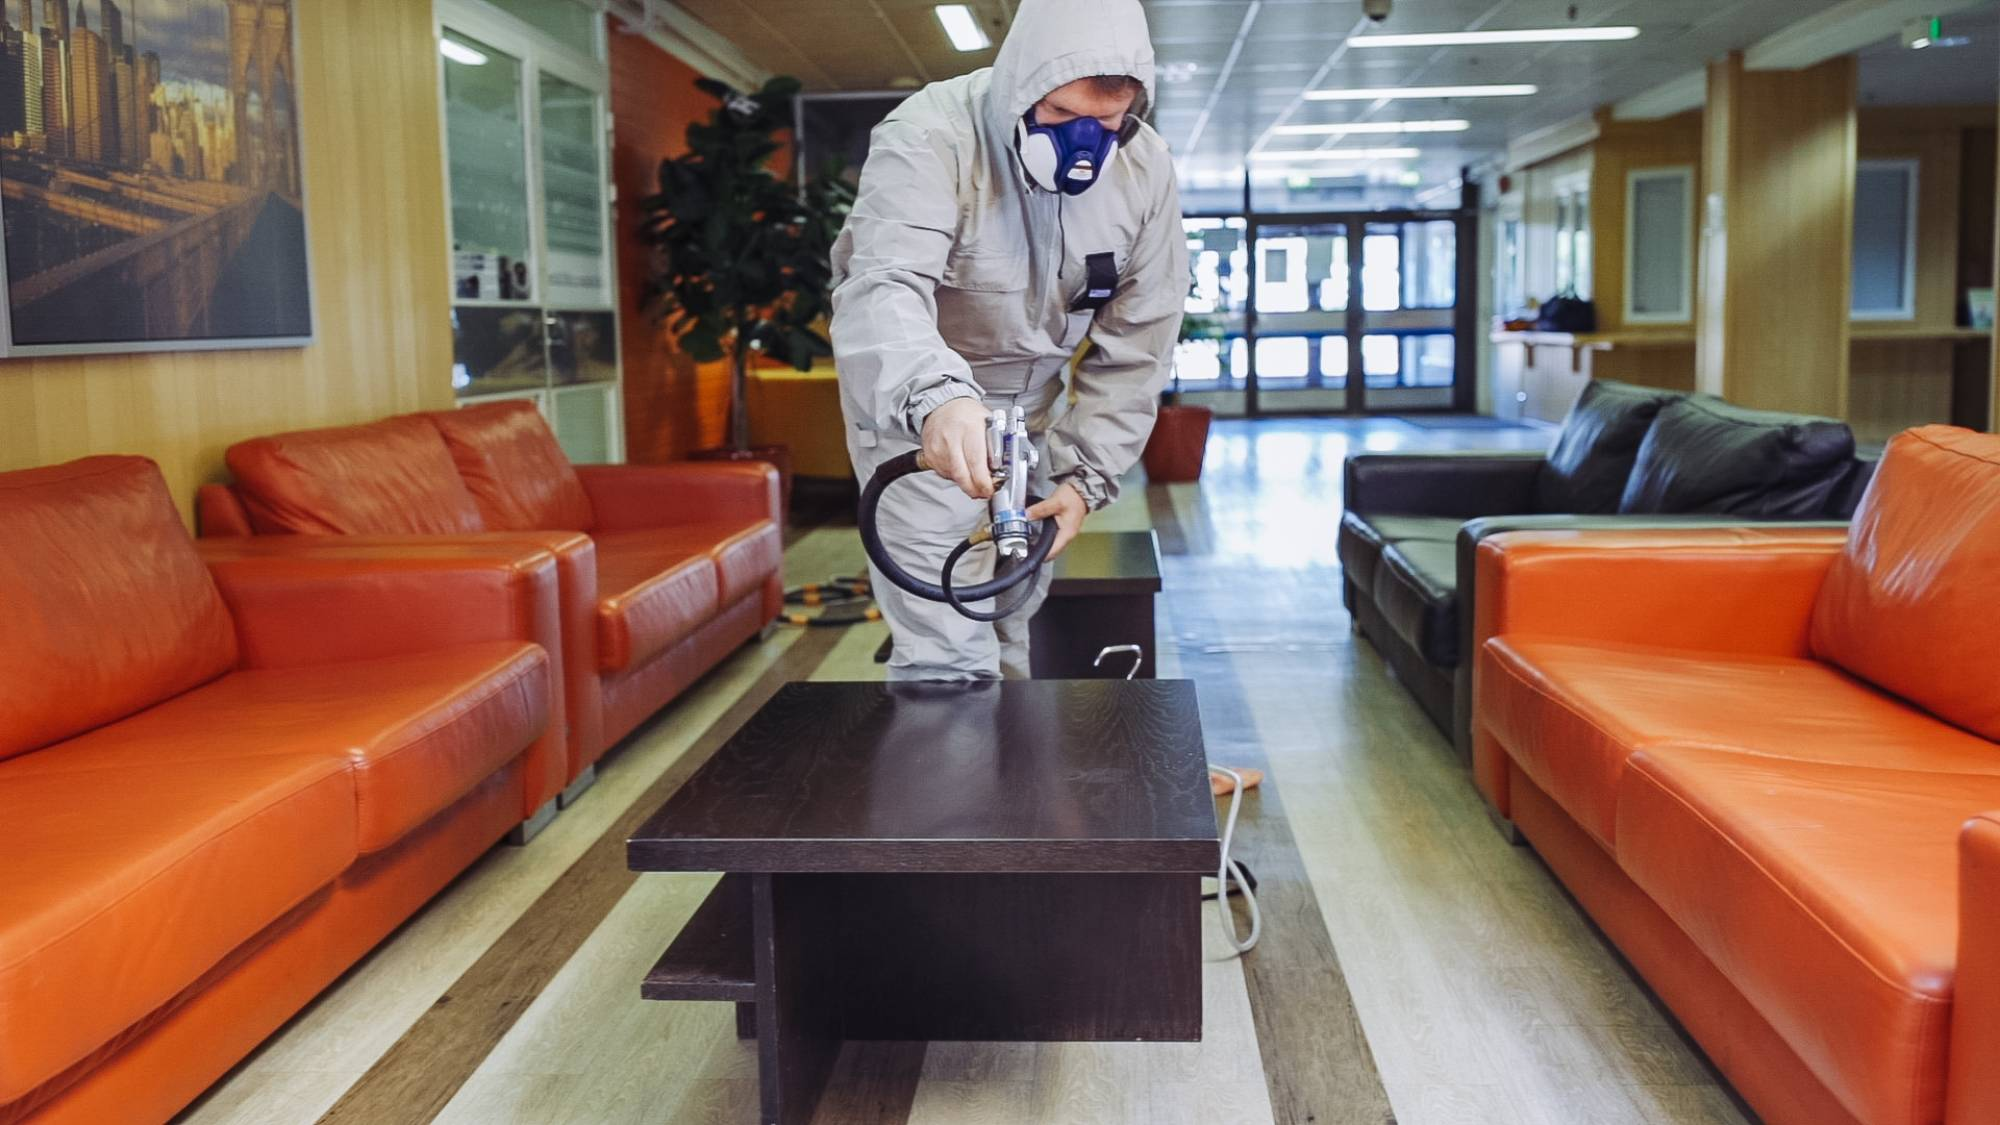 A man in a protective overall sprays substance on a table